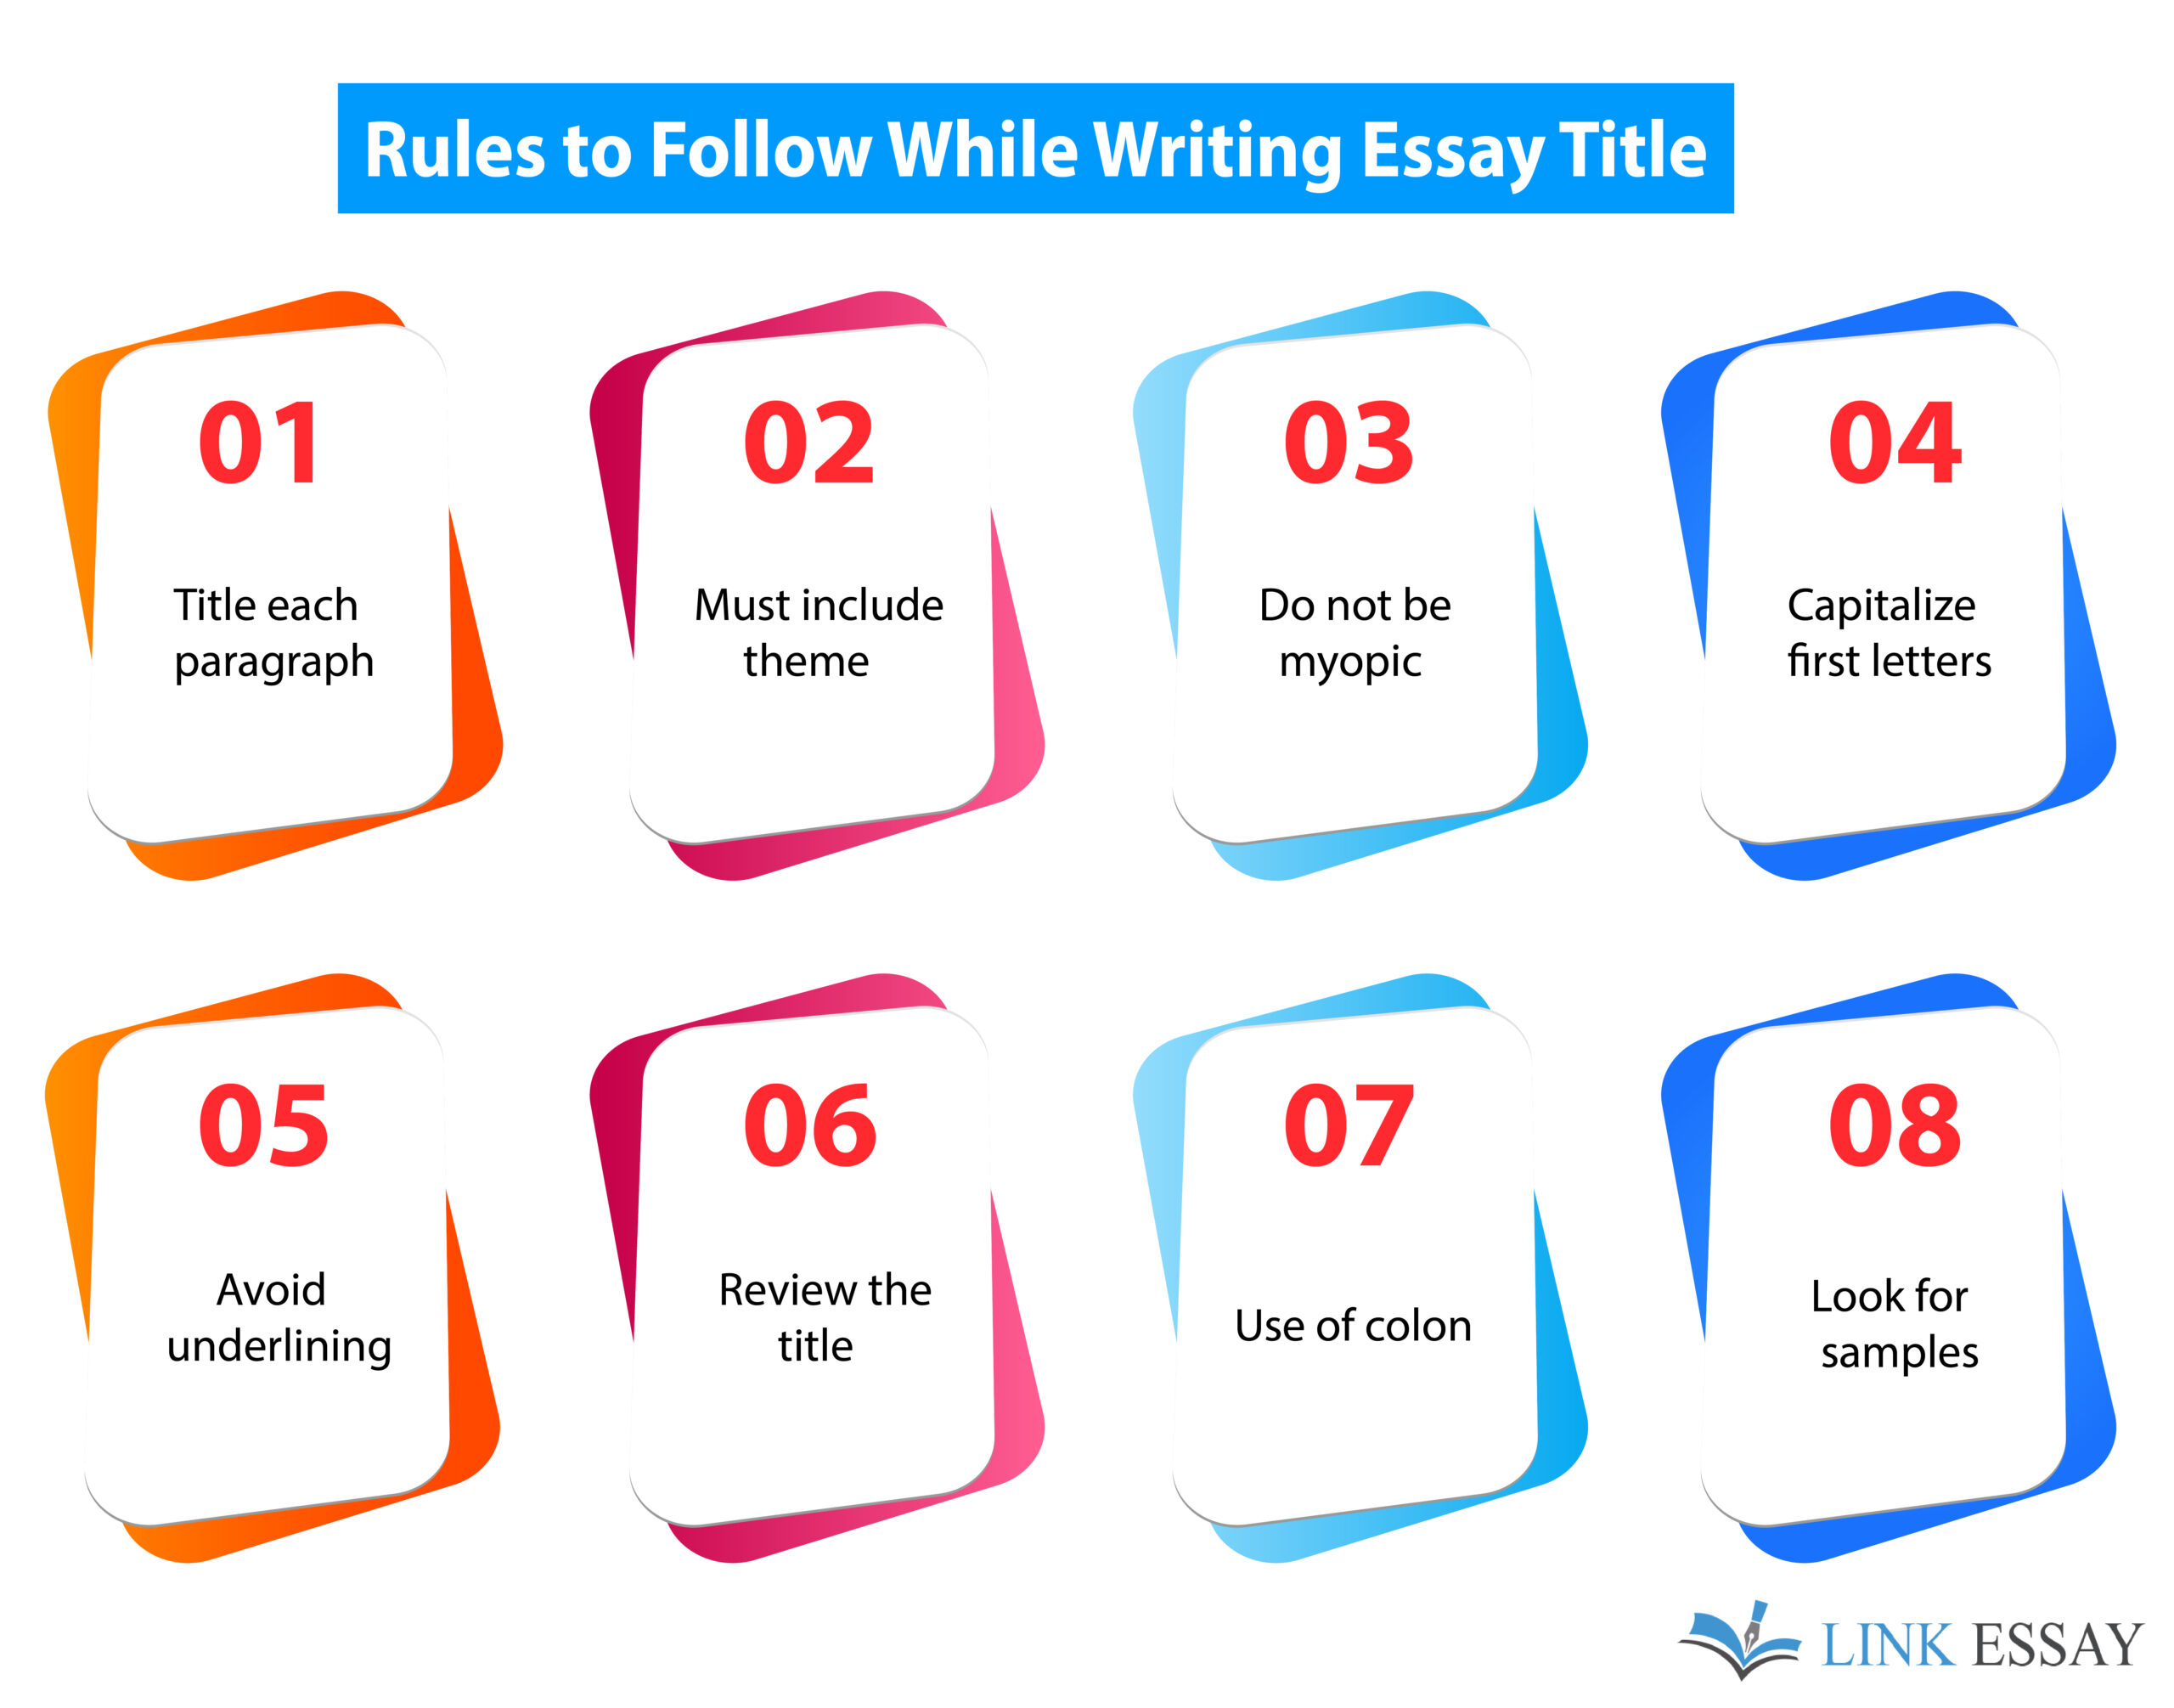 Rules to Follow While Title an Essay